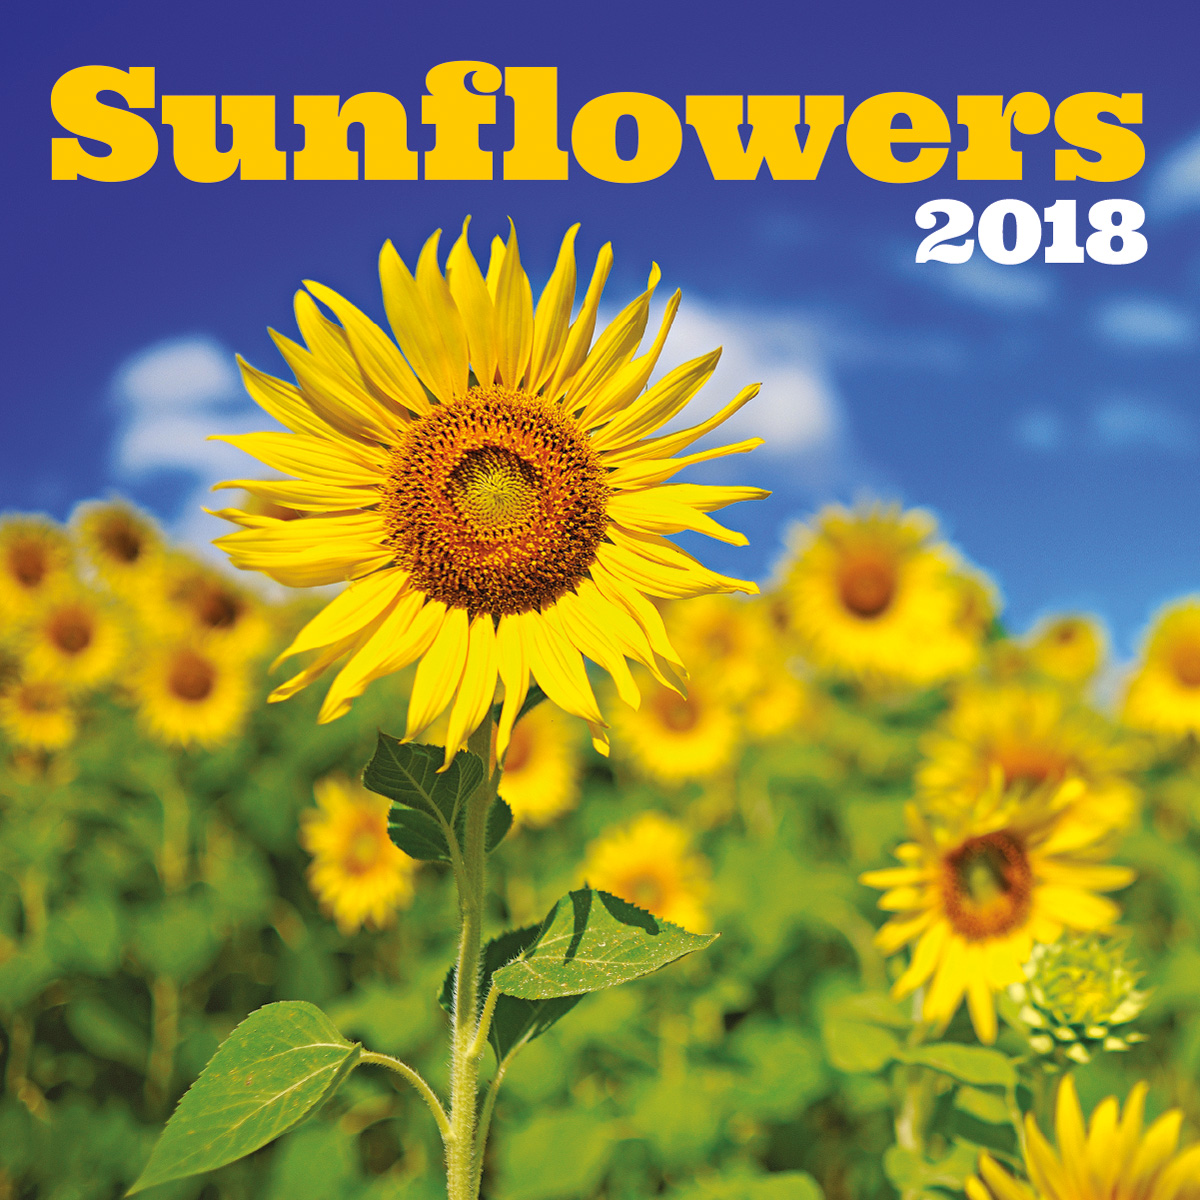 TURNER PHOTO, SUNFLOWERS 2018 WALL CALENDAR 18998940054